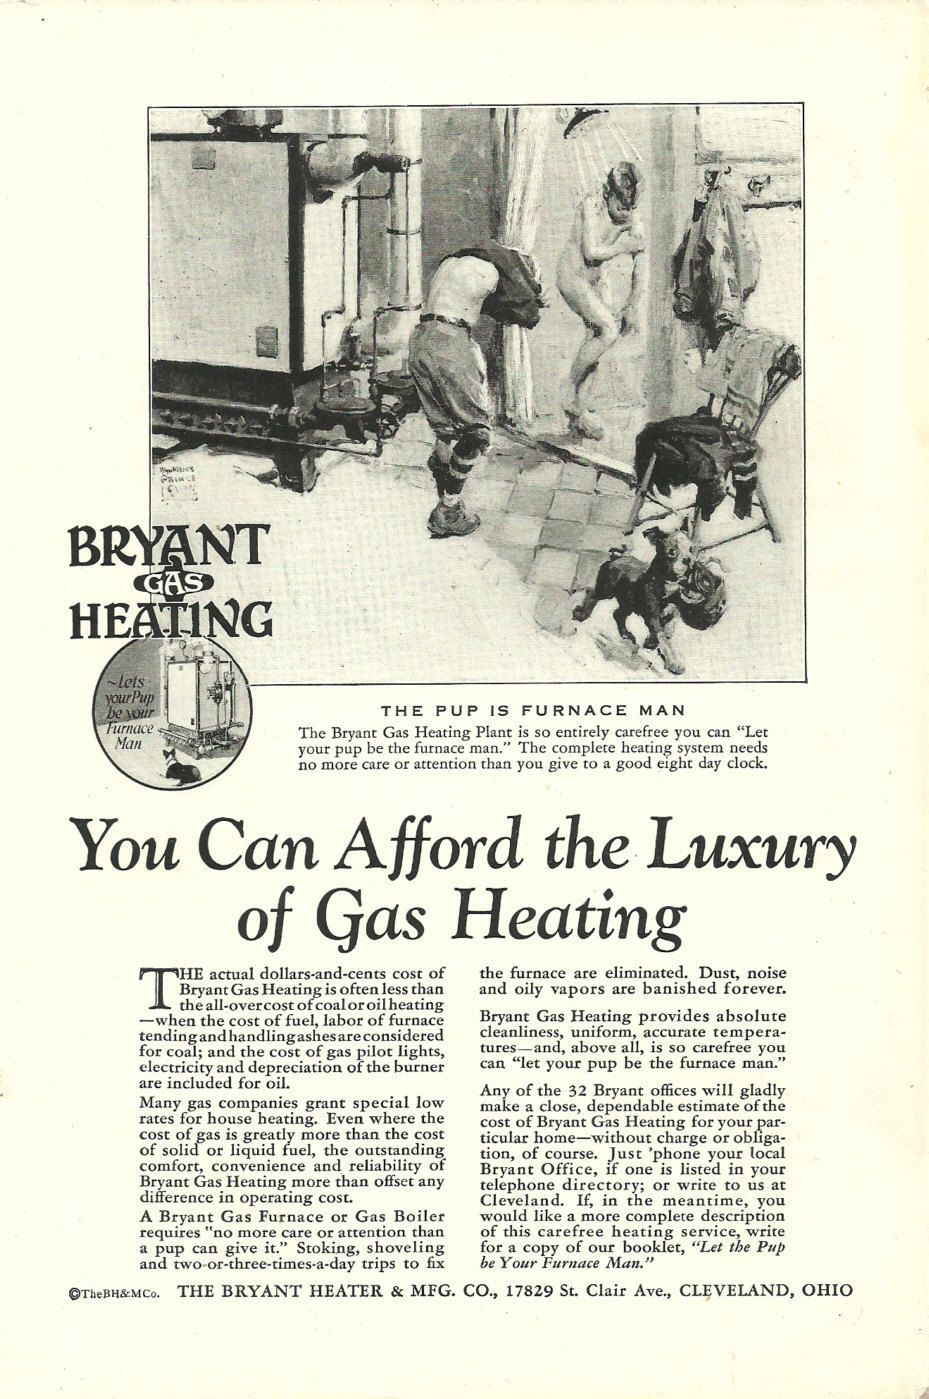 Pin By J E Hart On Vintage Ads Heating And Cooling Vintage Ads Vintage World Maps Vintage